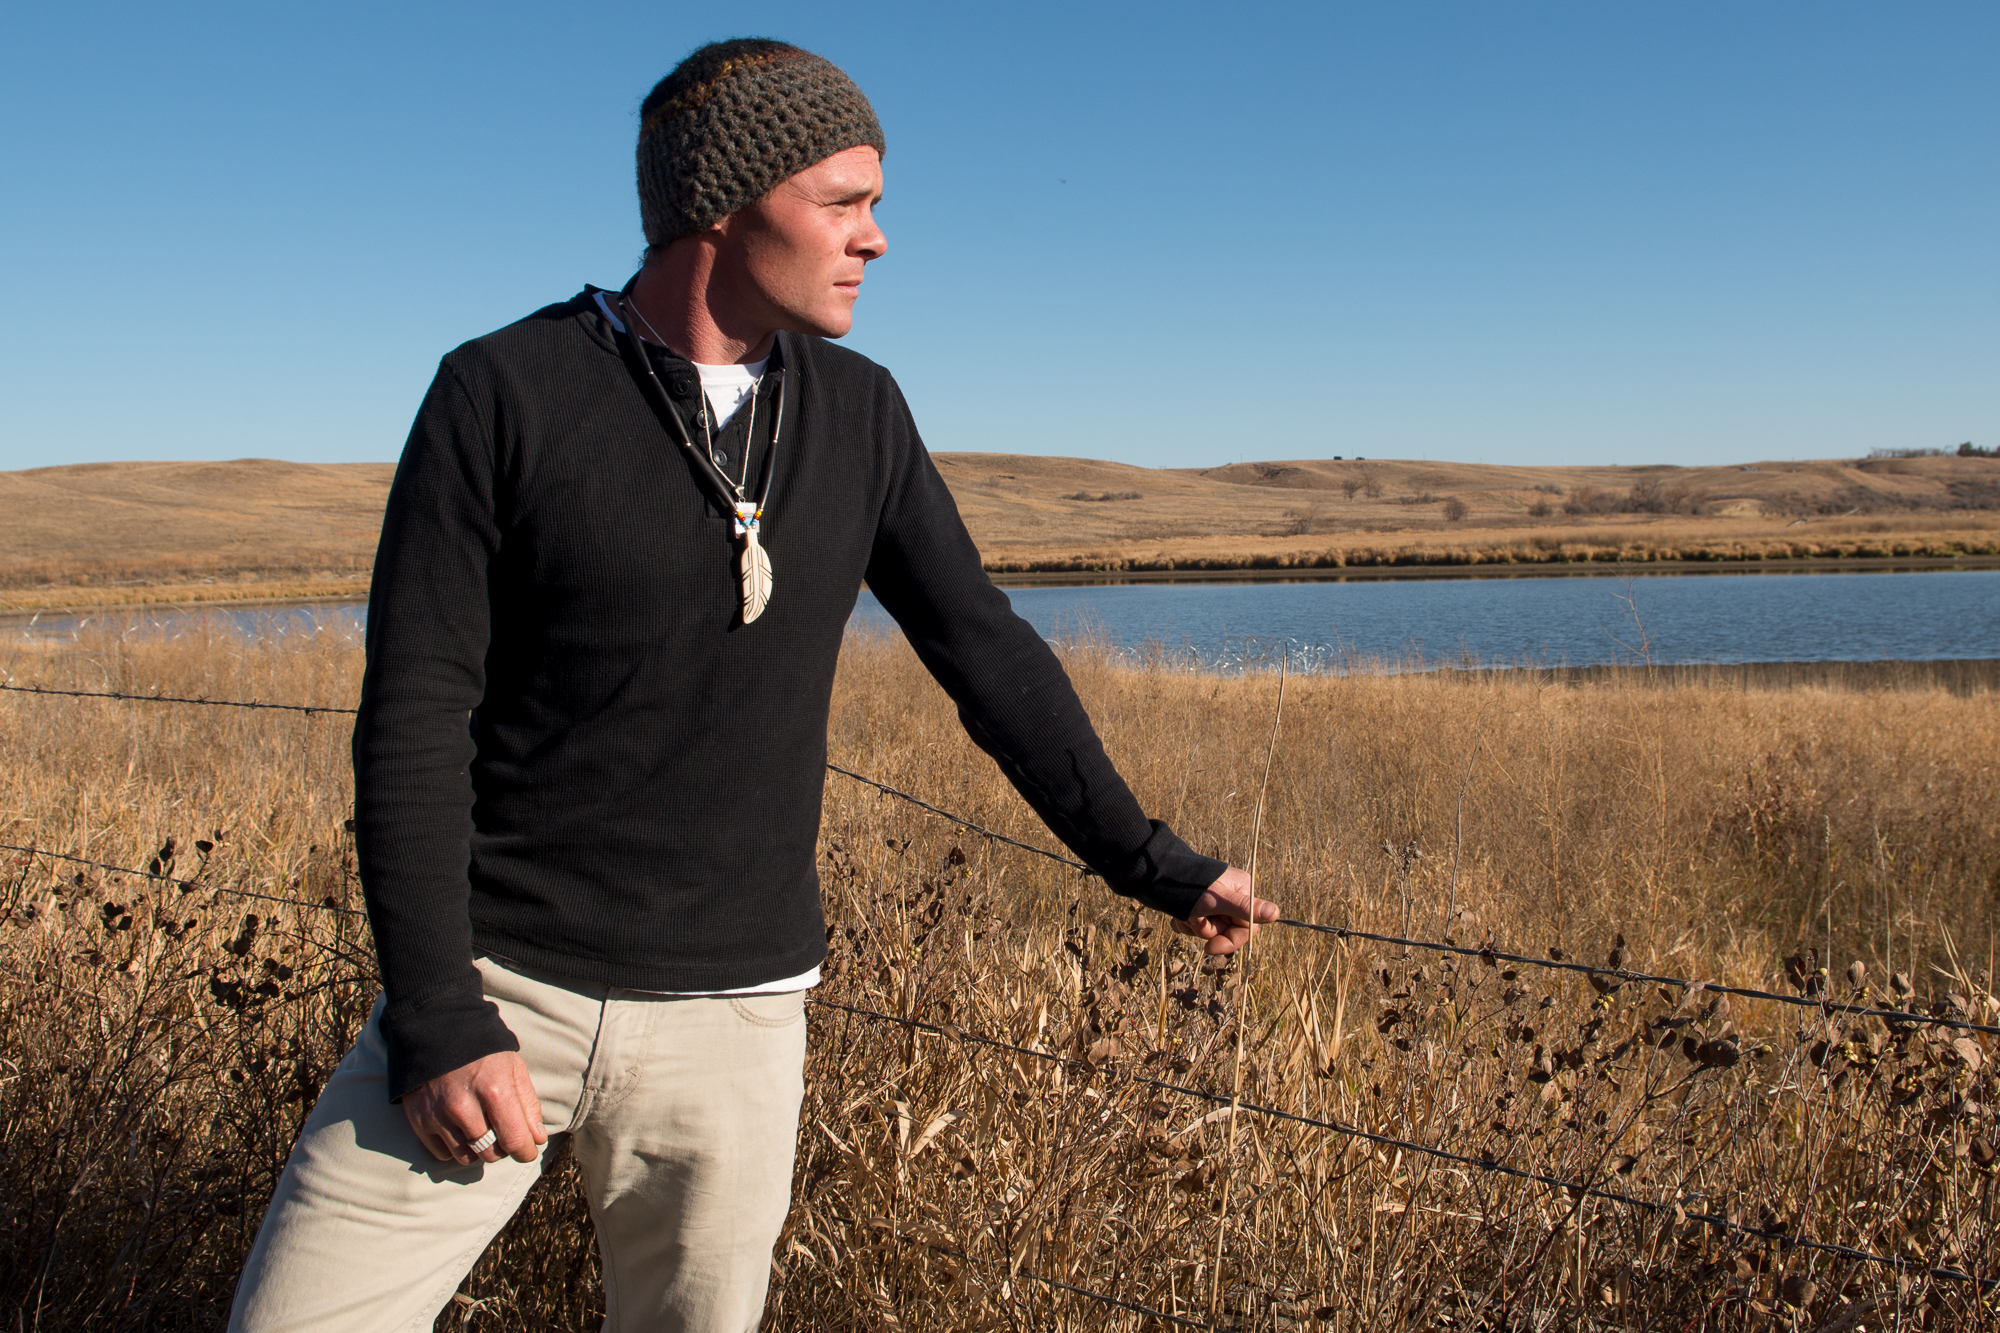 Kerry Rice, from Eugene, Oregon, stands next to Cantapeta Creek just north of the Oceti Sakowin camp along Highway 1805 north of the Standing Rock reservation in North Dakota. Rice, a former Army National Guard calvary scout came to Standing Rock to support those working to protect the water and lands.